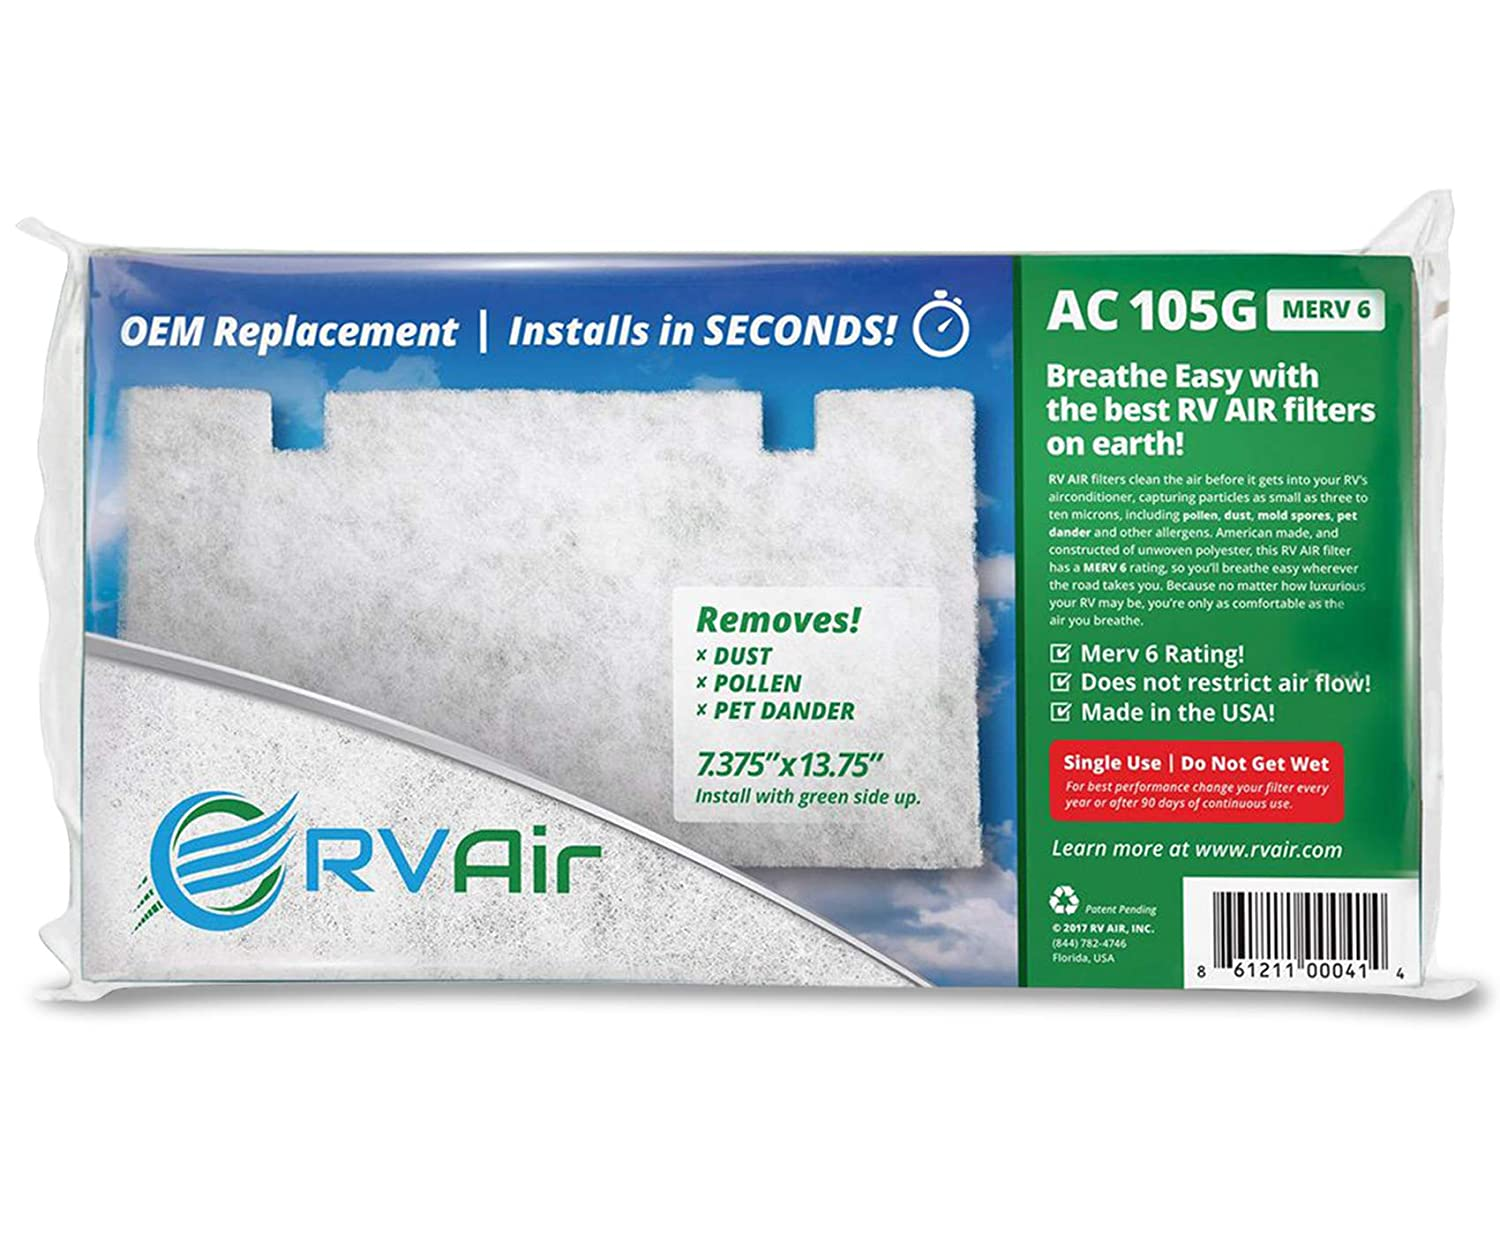 RV Air AC 105G | Replacement RV AC Filter for Dometic  3313107 103/3105012 003 | Replace Standard RV Air Conditioner Filters for  Better Airflow and